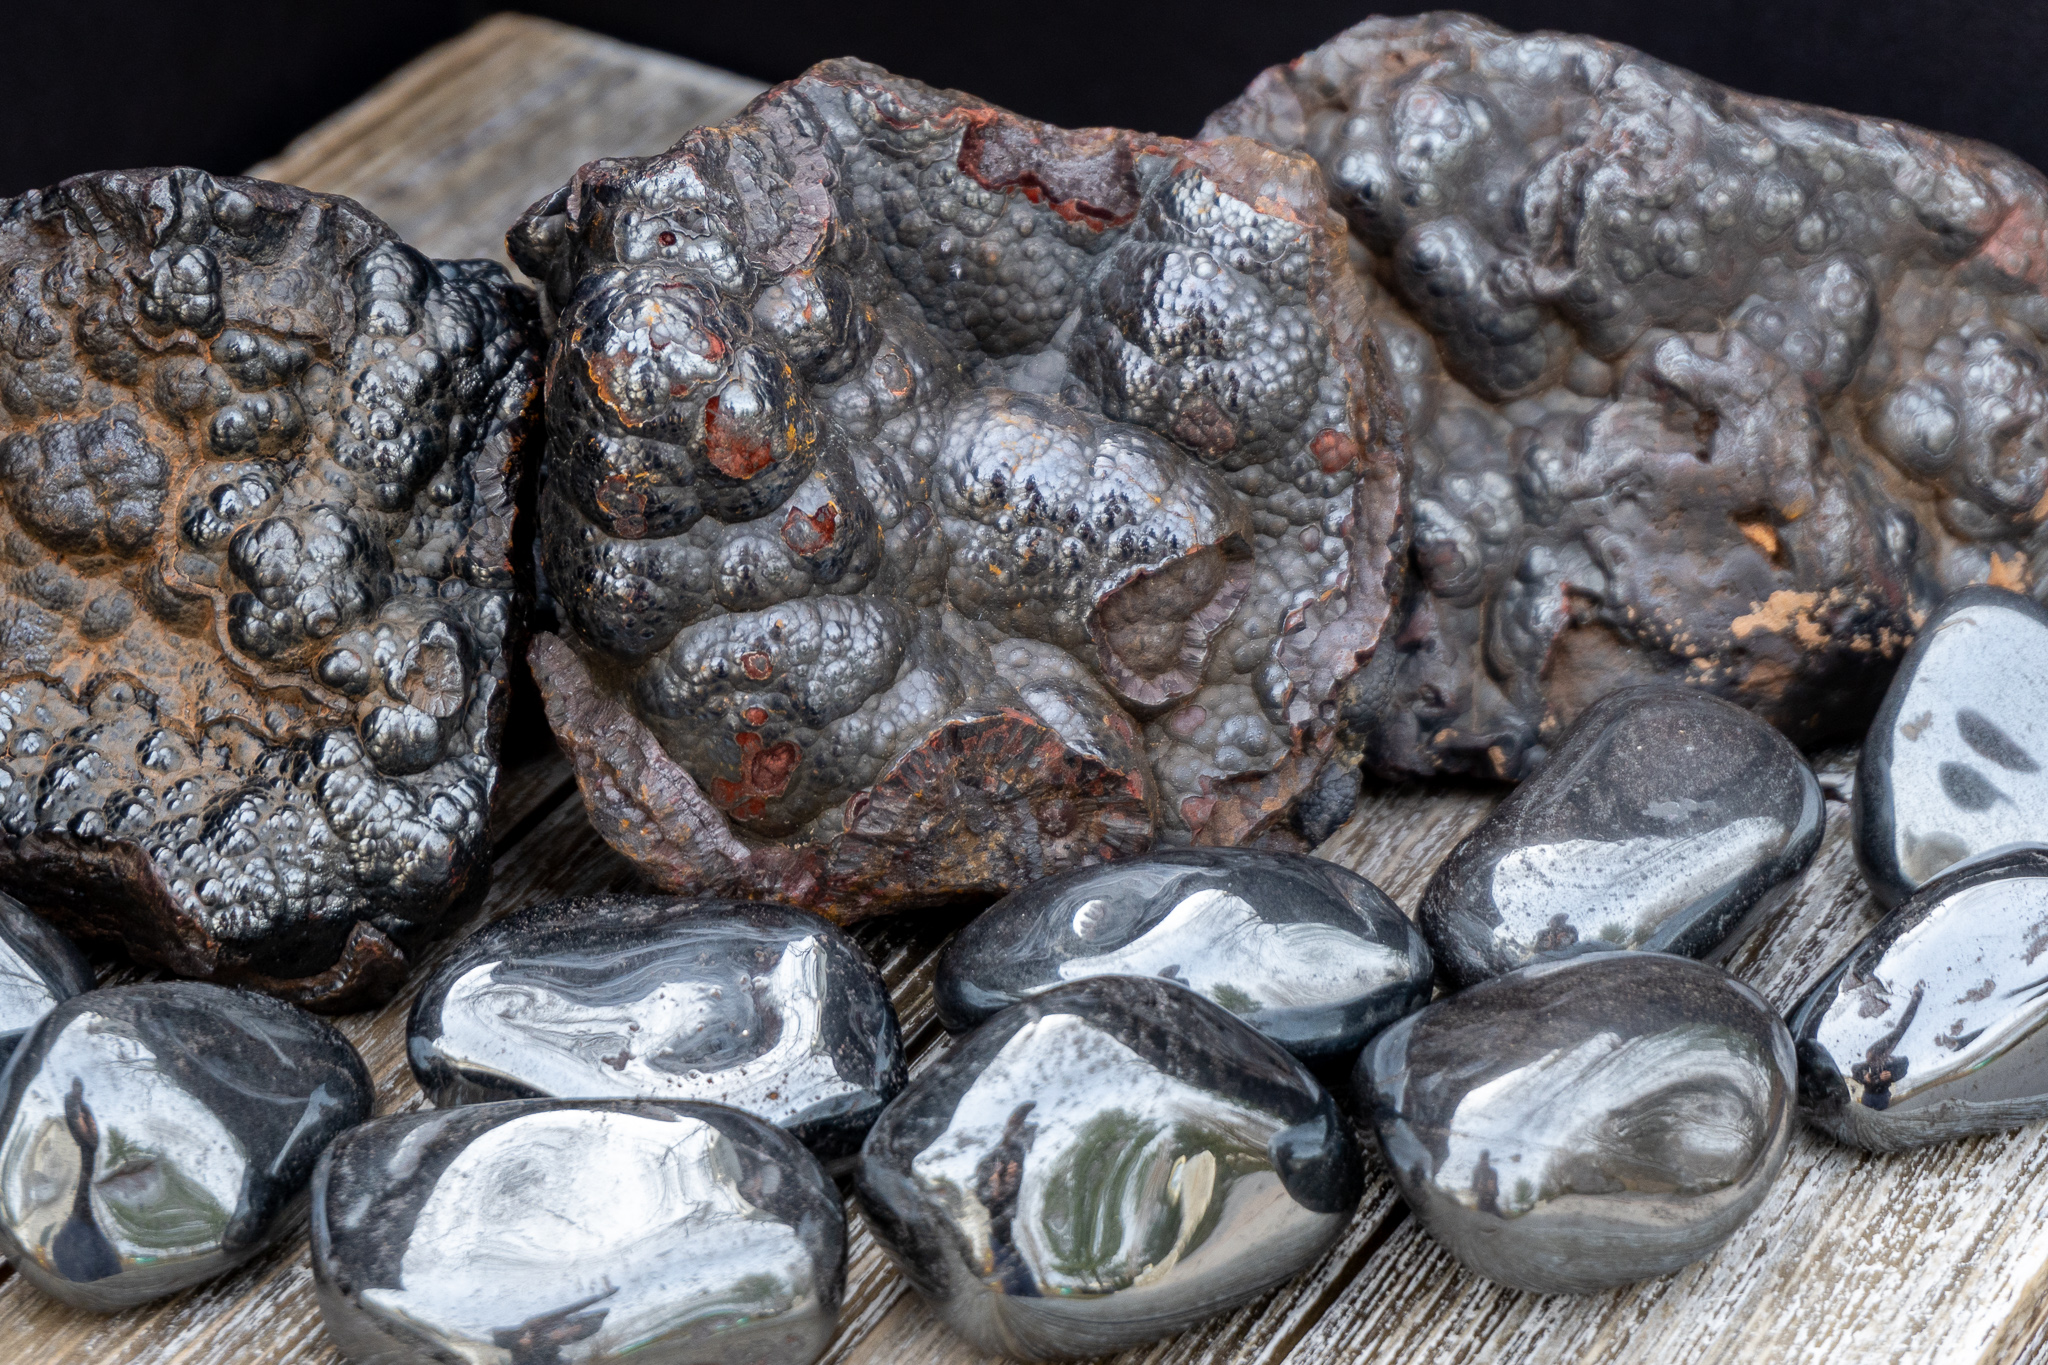 Hematite Meanings, Properties and Uses